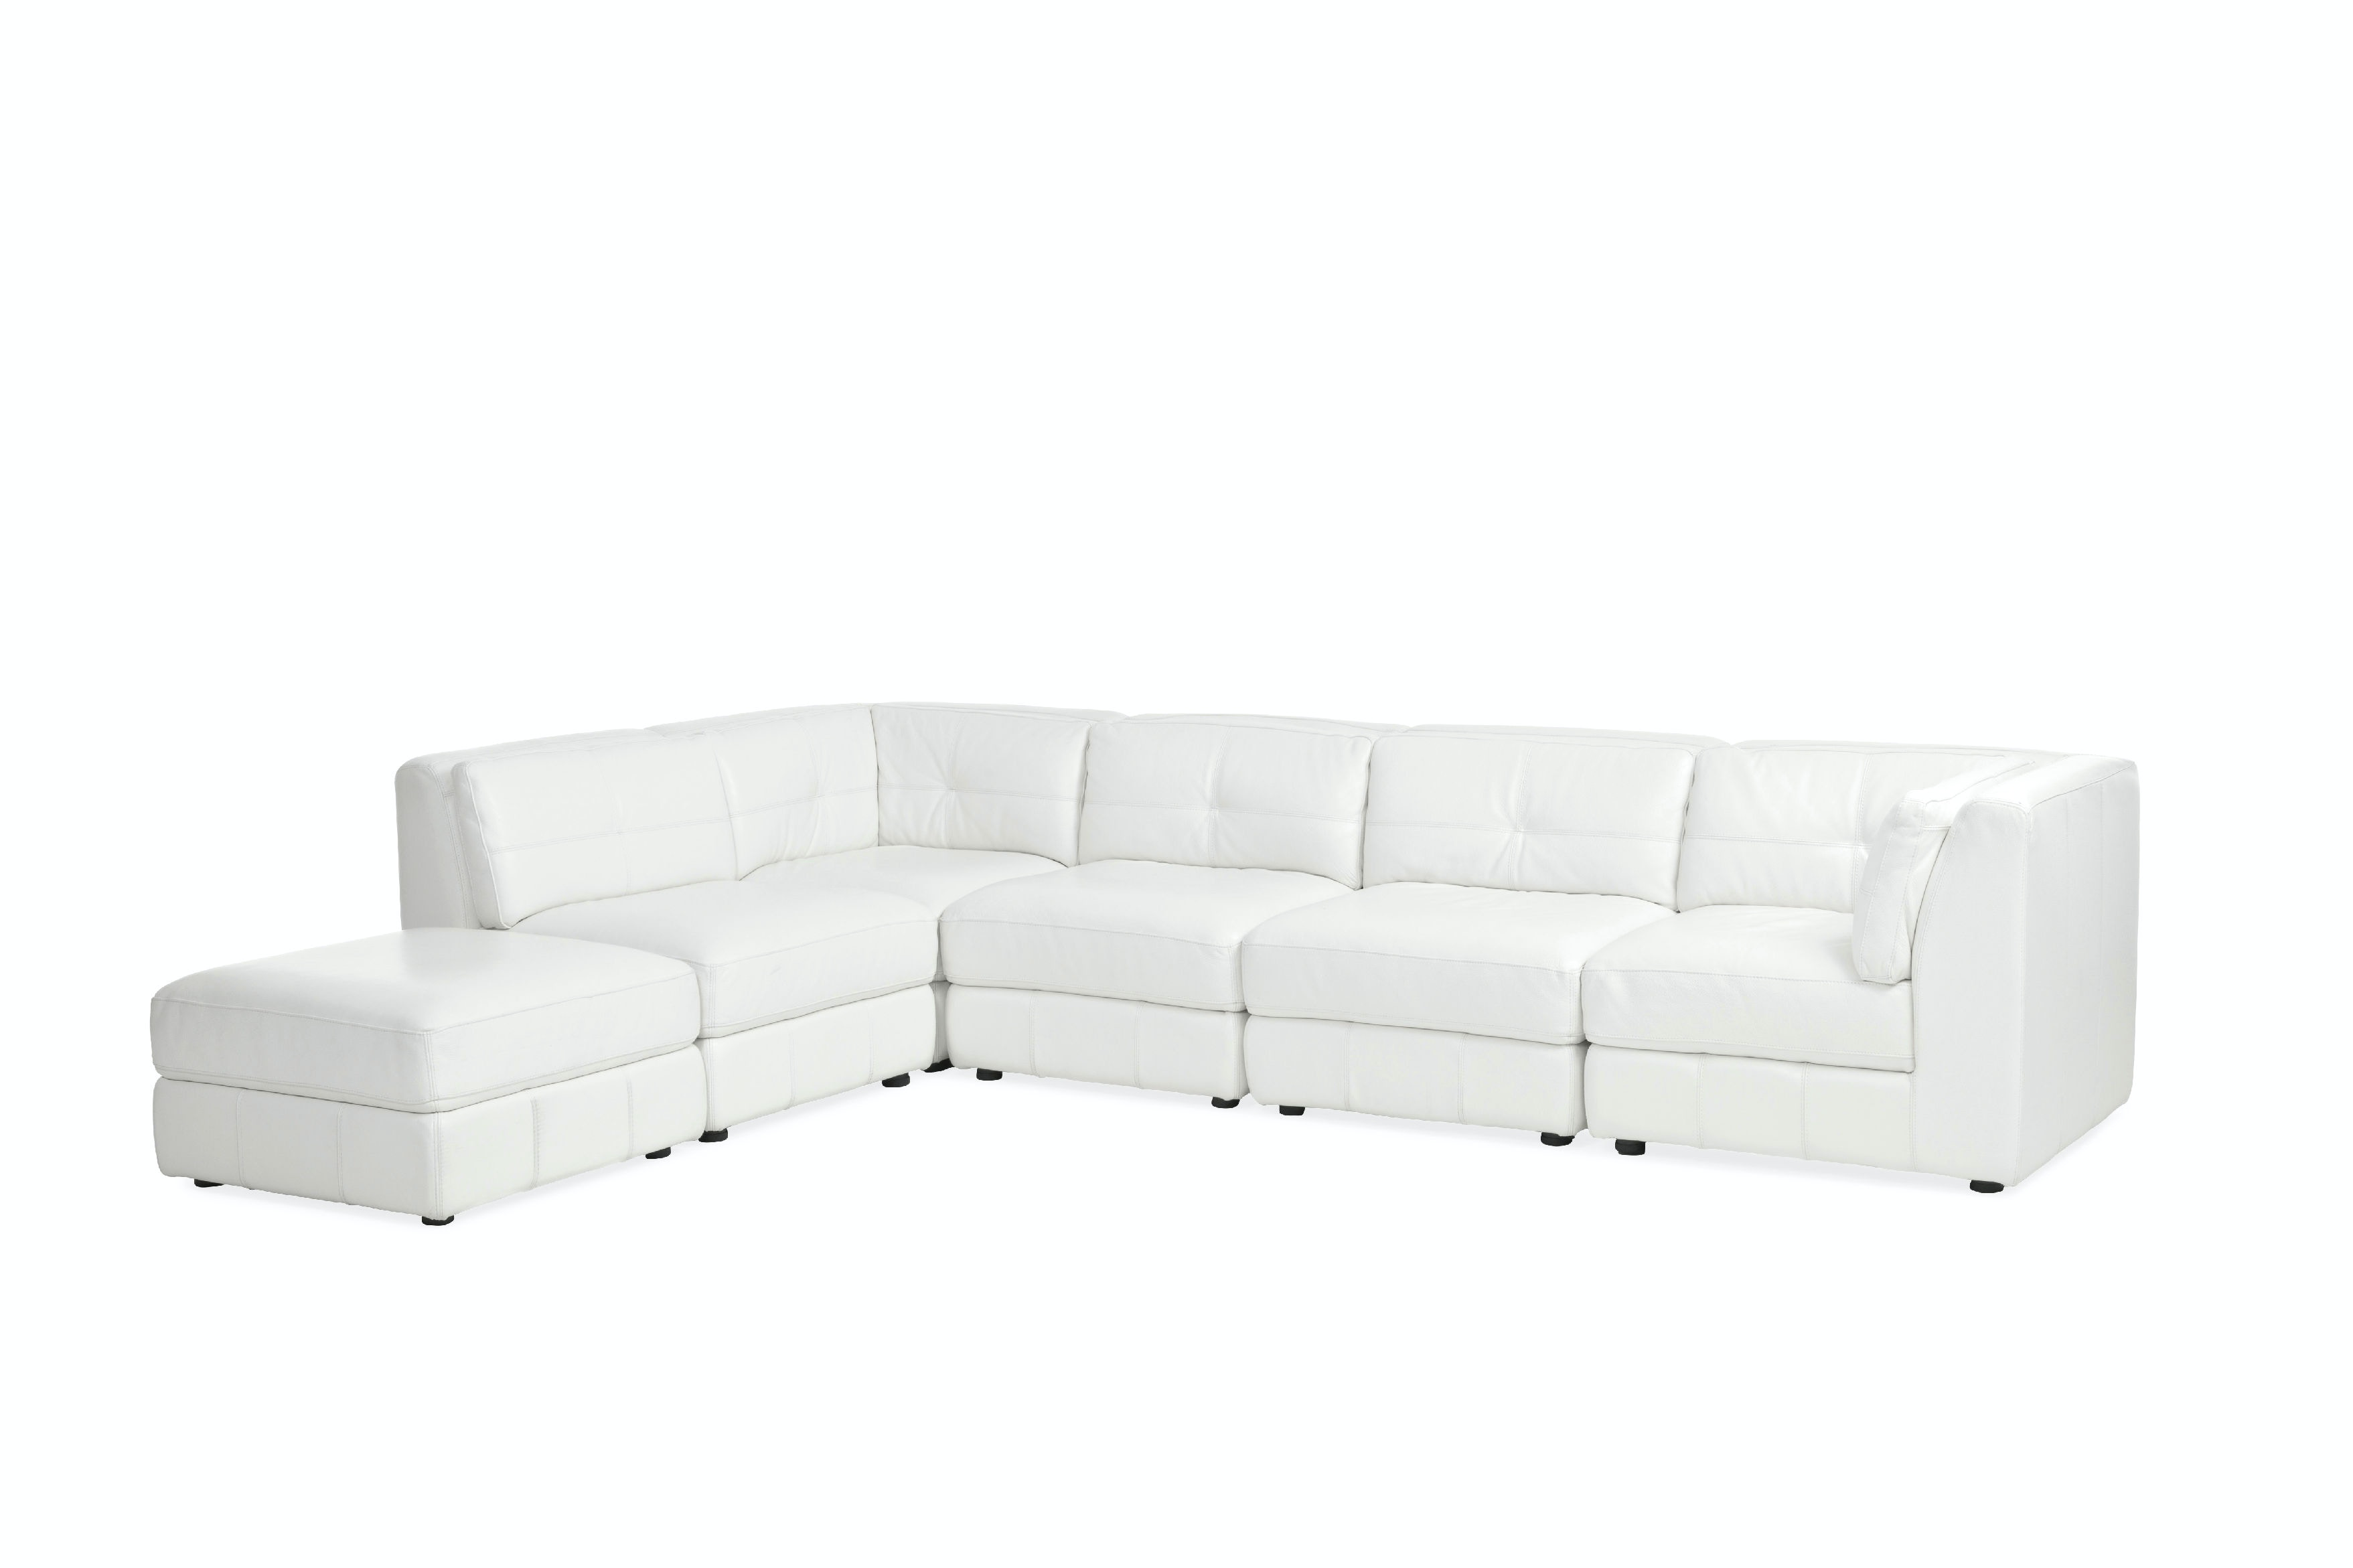 Penthouse 100% Leather 6 Piece Sectional